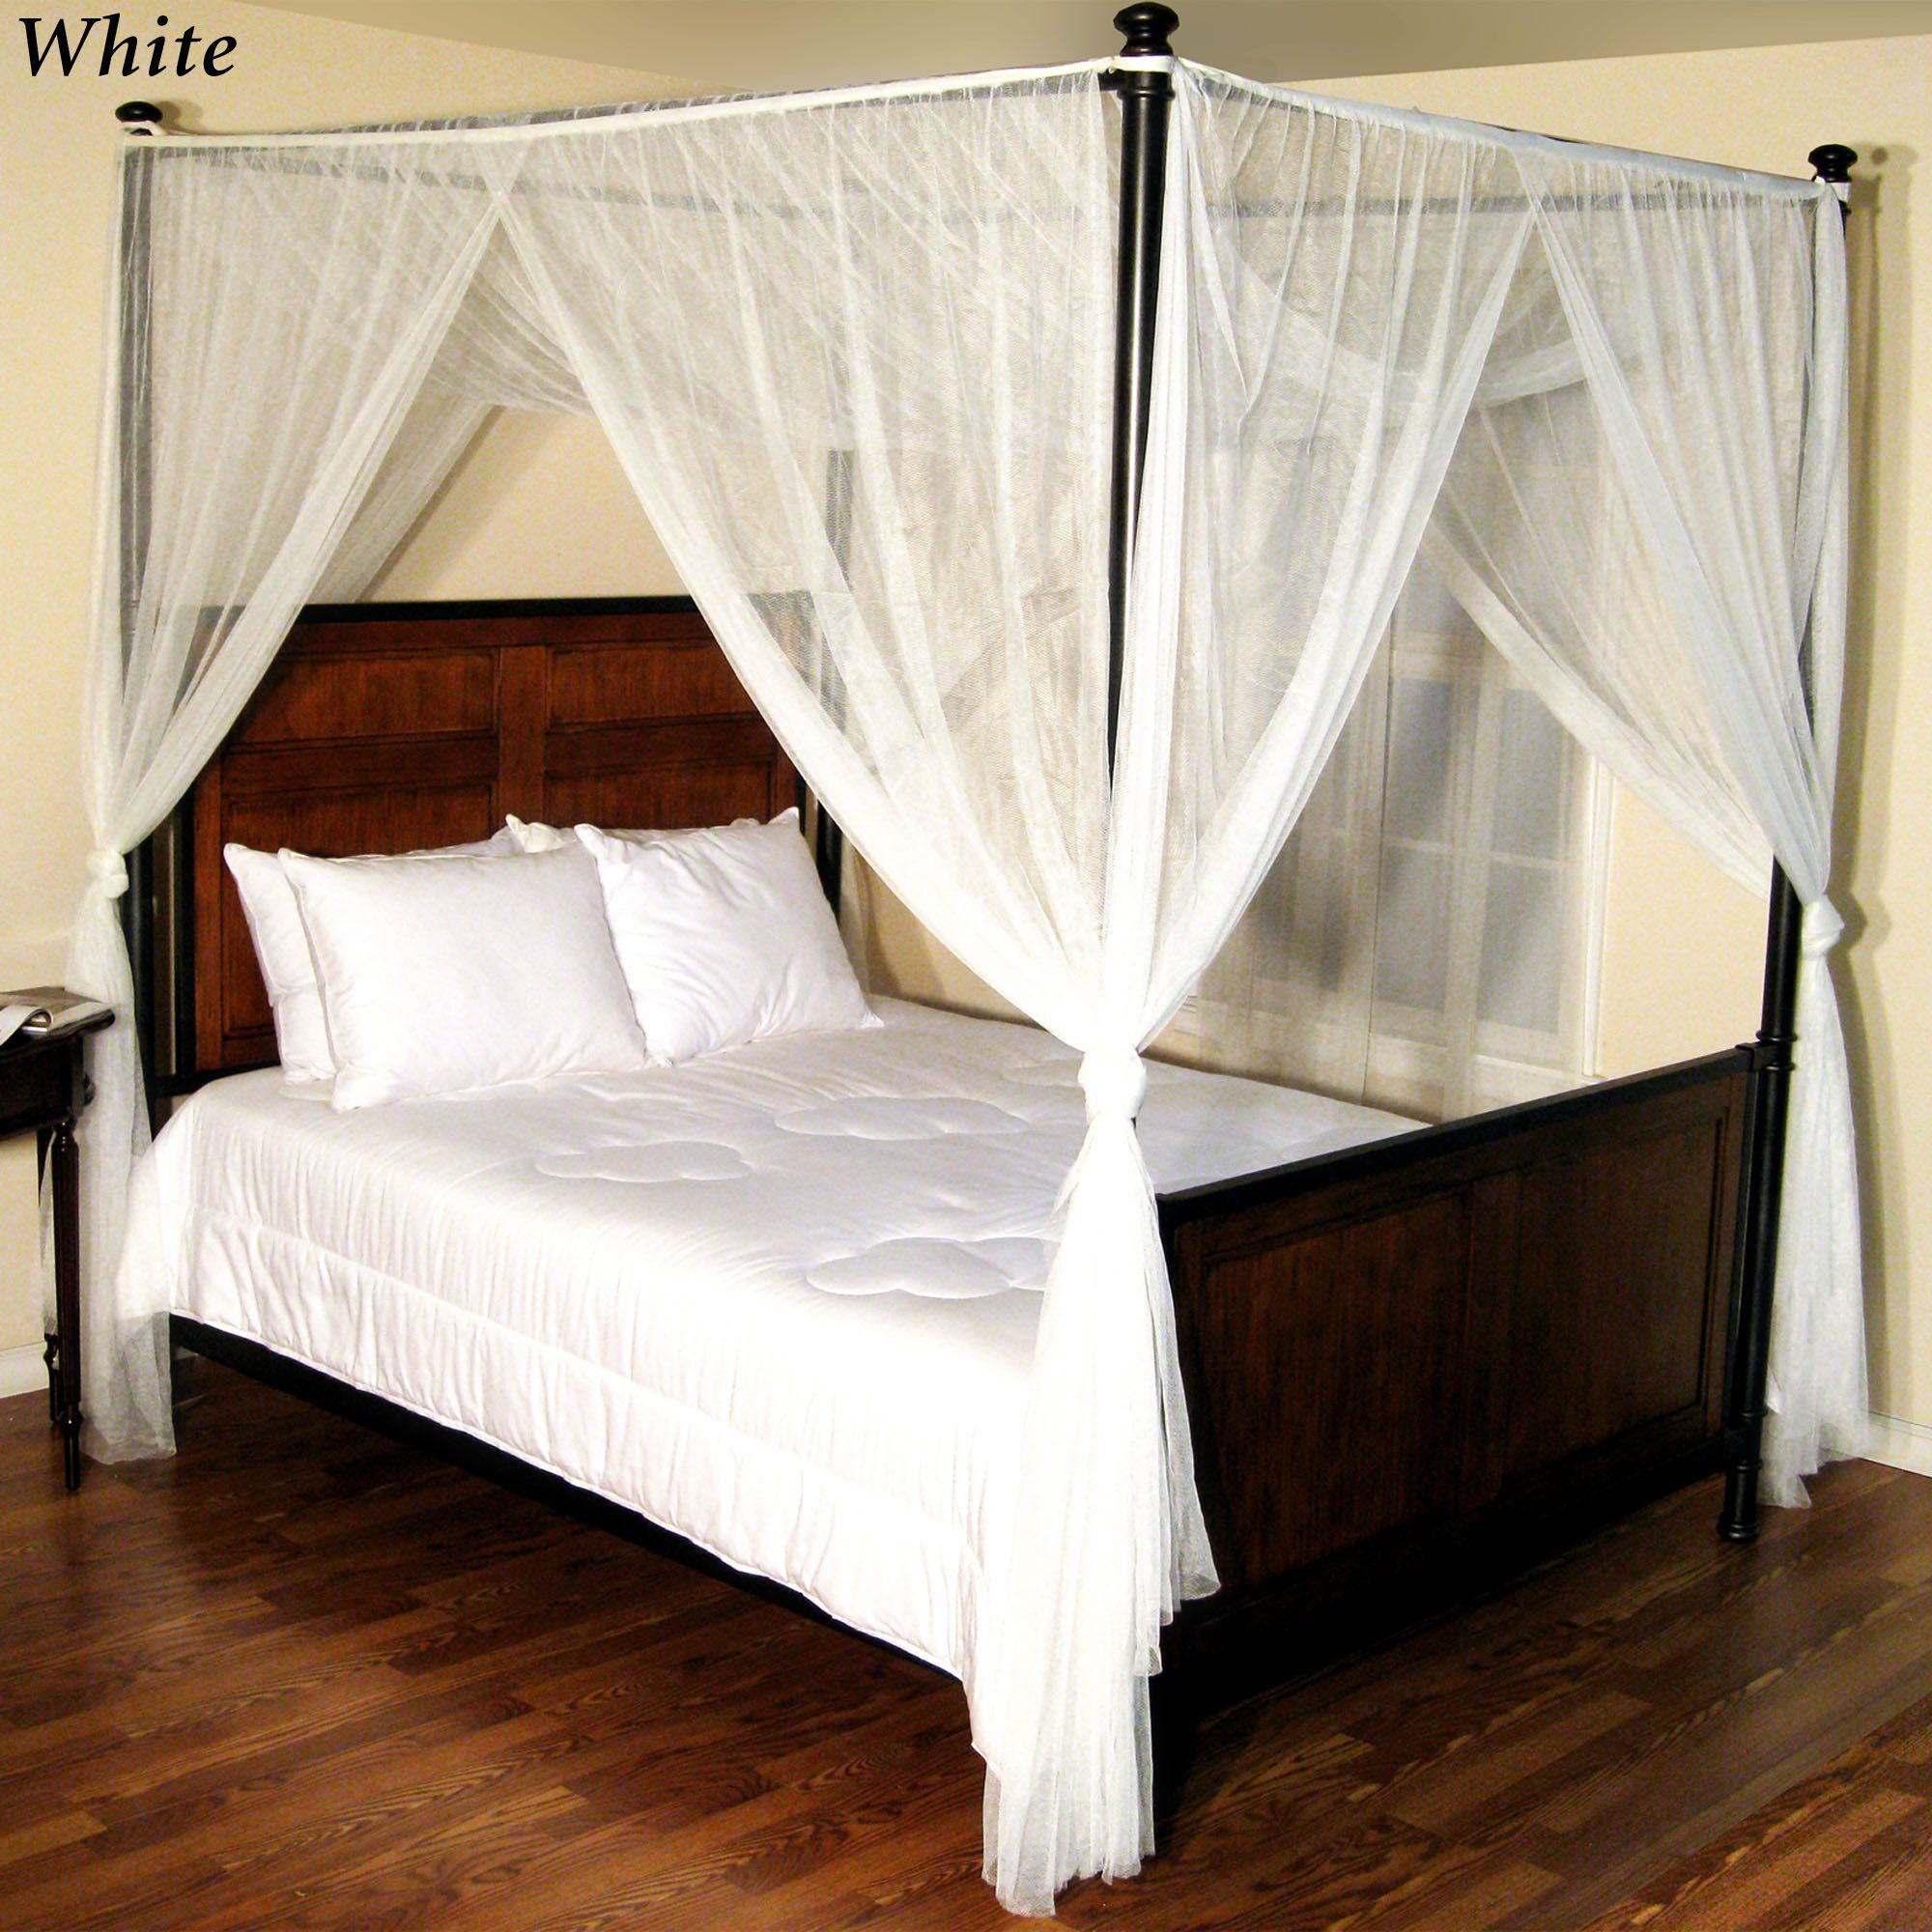 Palace 4-Poster Bed Canopy & Palace 4-Poster Bed Canopy | DIY Home Projects | Pinterest ...